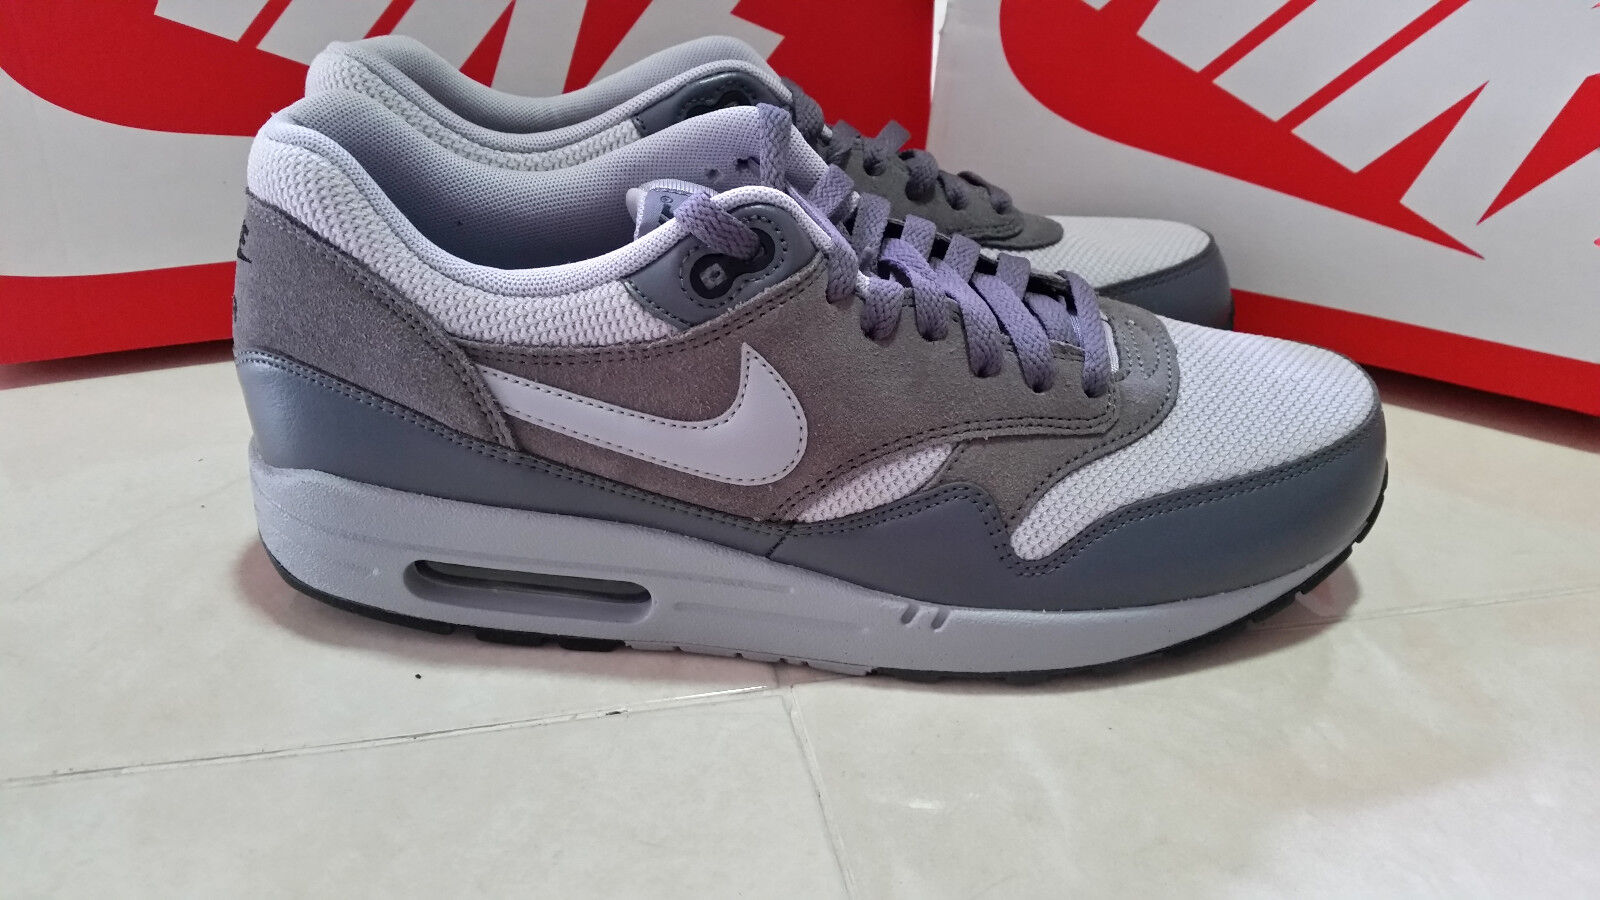 NIKE AIR MAX 1 ESSENTIAL MEN'S  ATHLETIC SHOES SIZE 10 GREY  537383 019